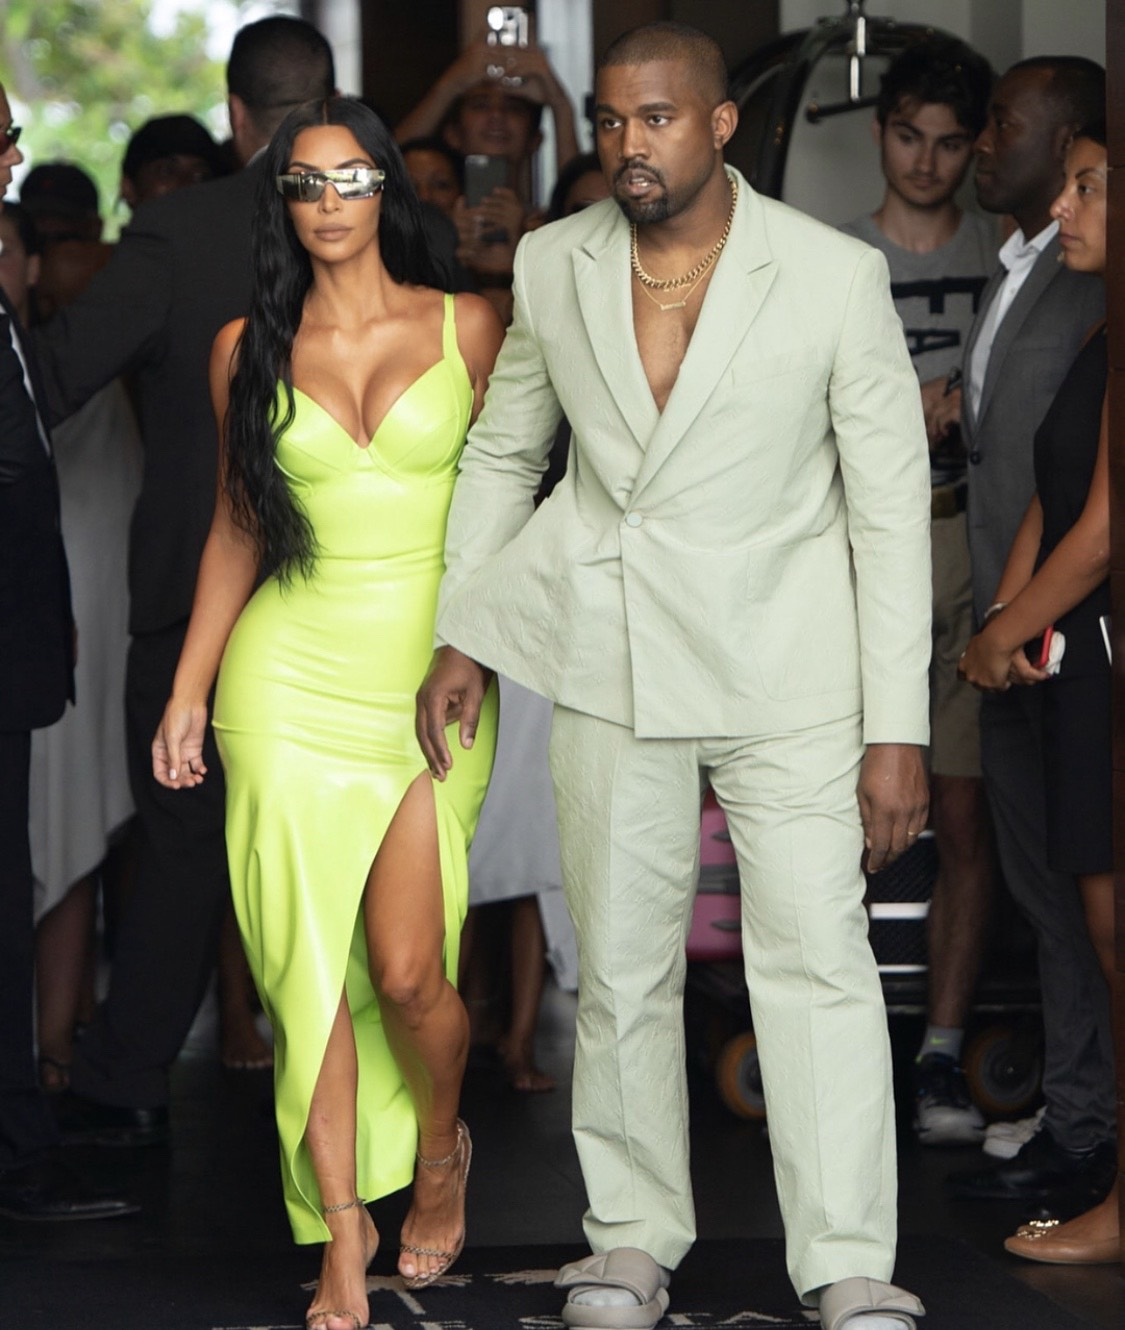 Kim Kardashian West Kimkardashian Kardashian: Kim & Kanye's Show-Stopping Designer Looks For 2Chainz